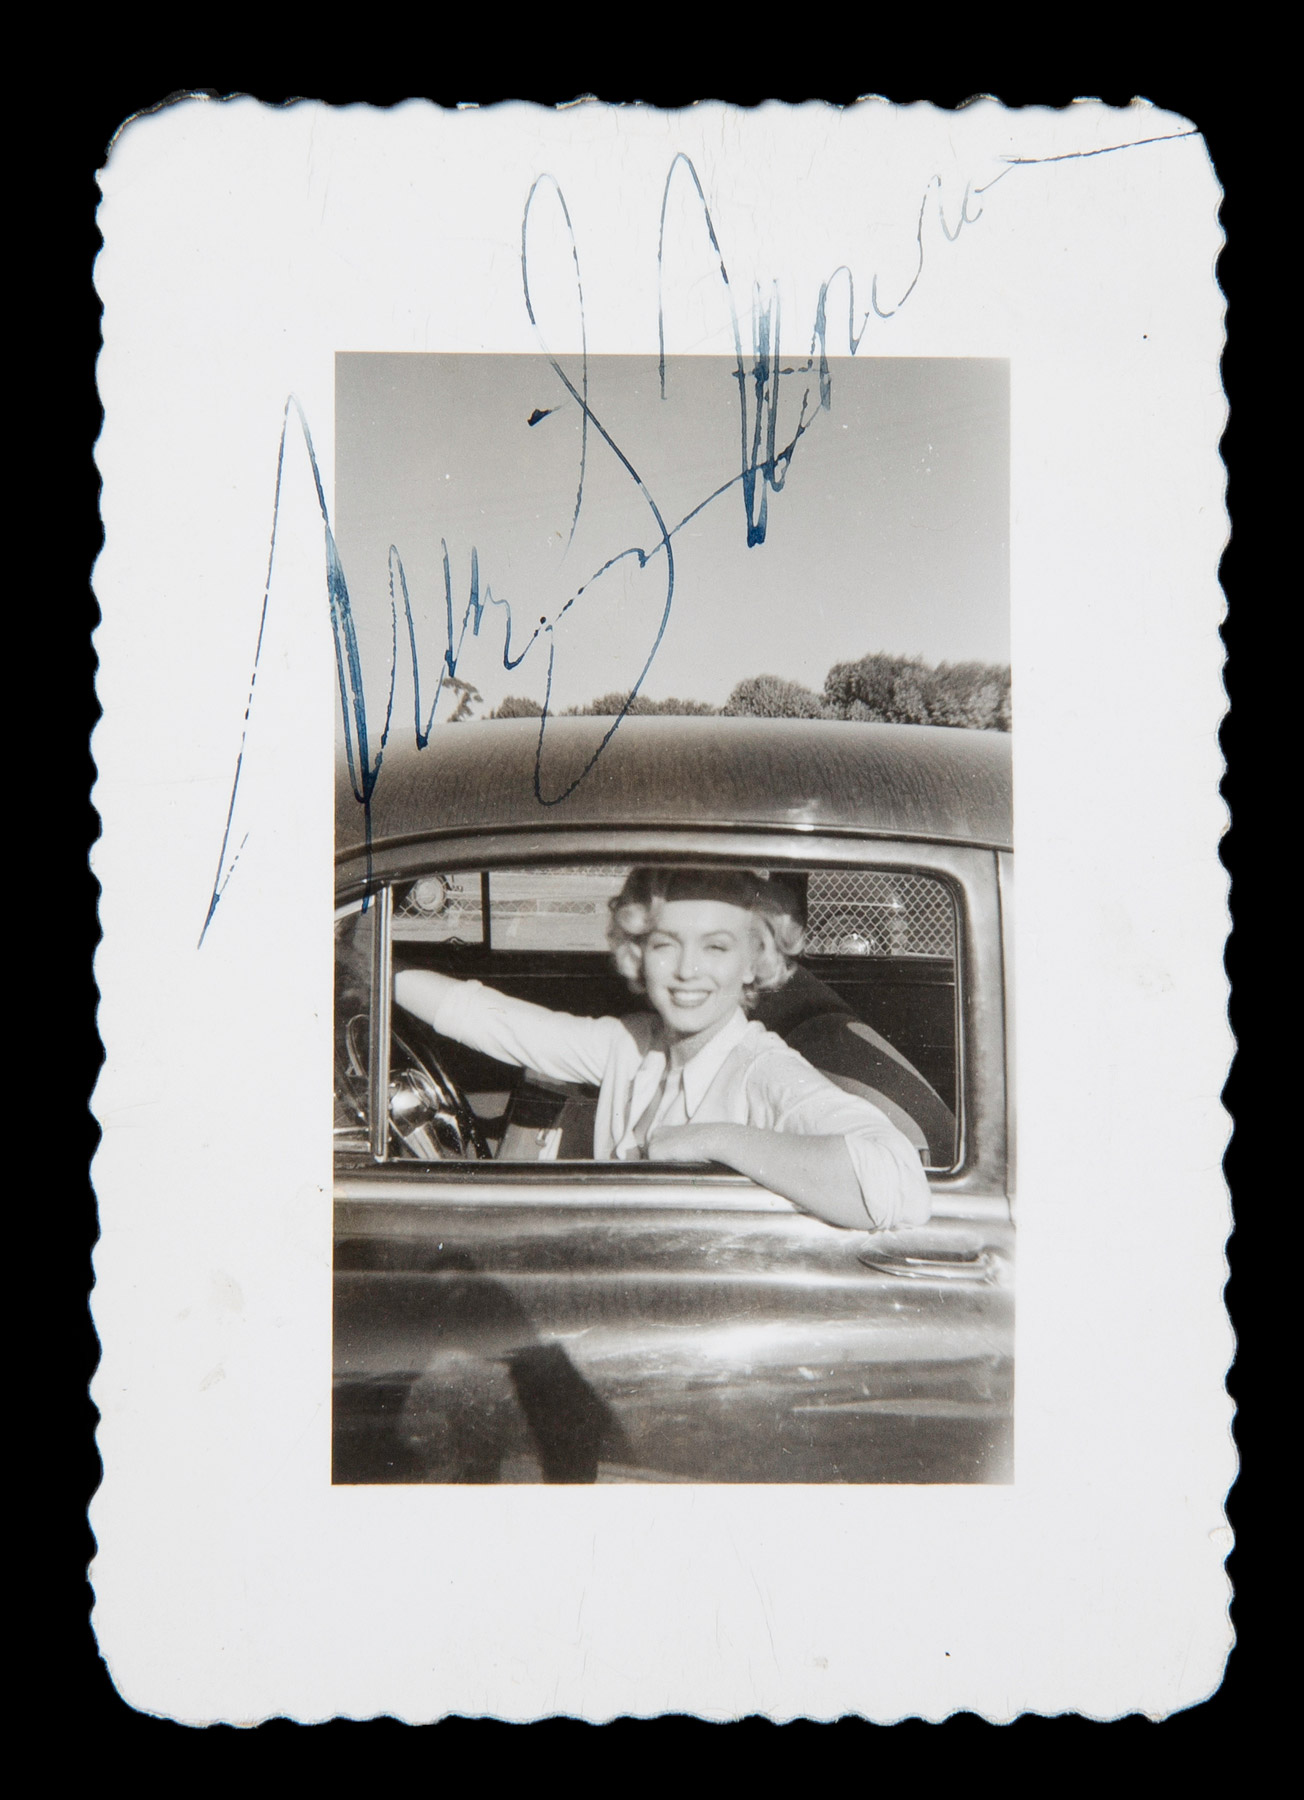 Marilyn Monroe driving a car and posing through the driver's side window, taken in the mid-1950s.